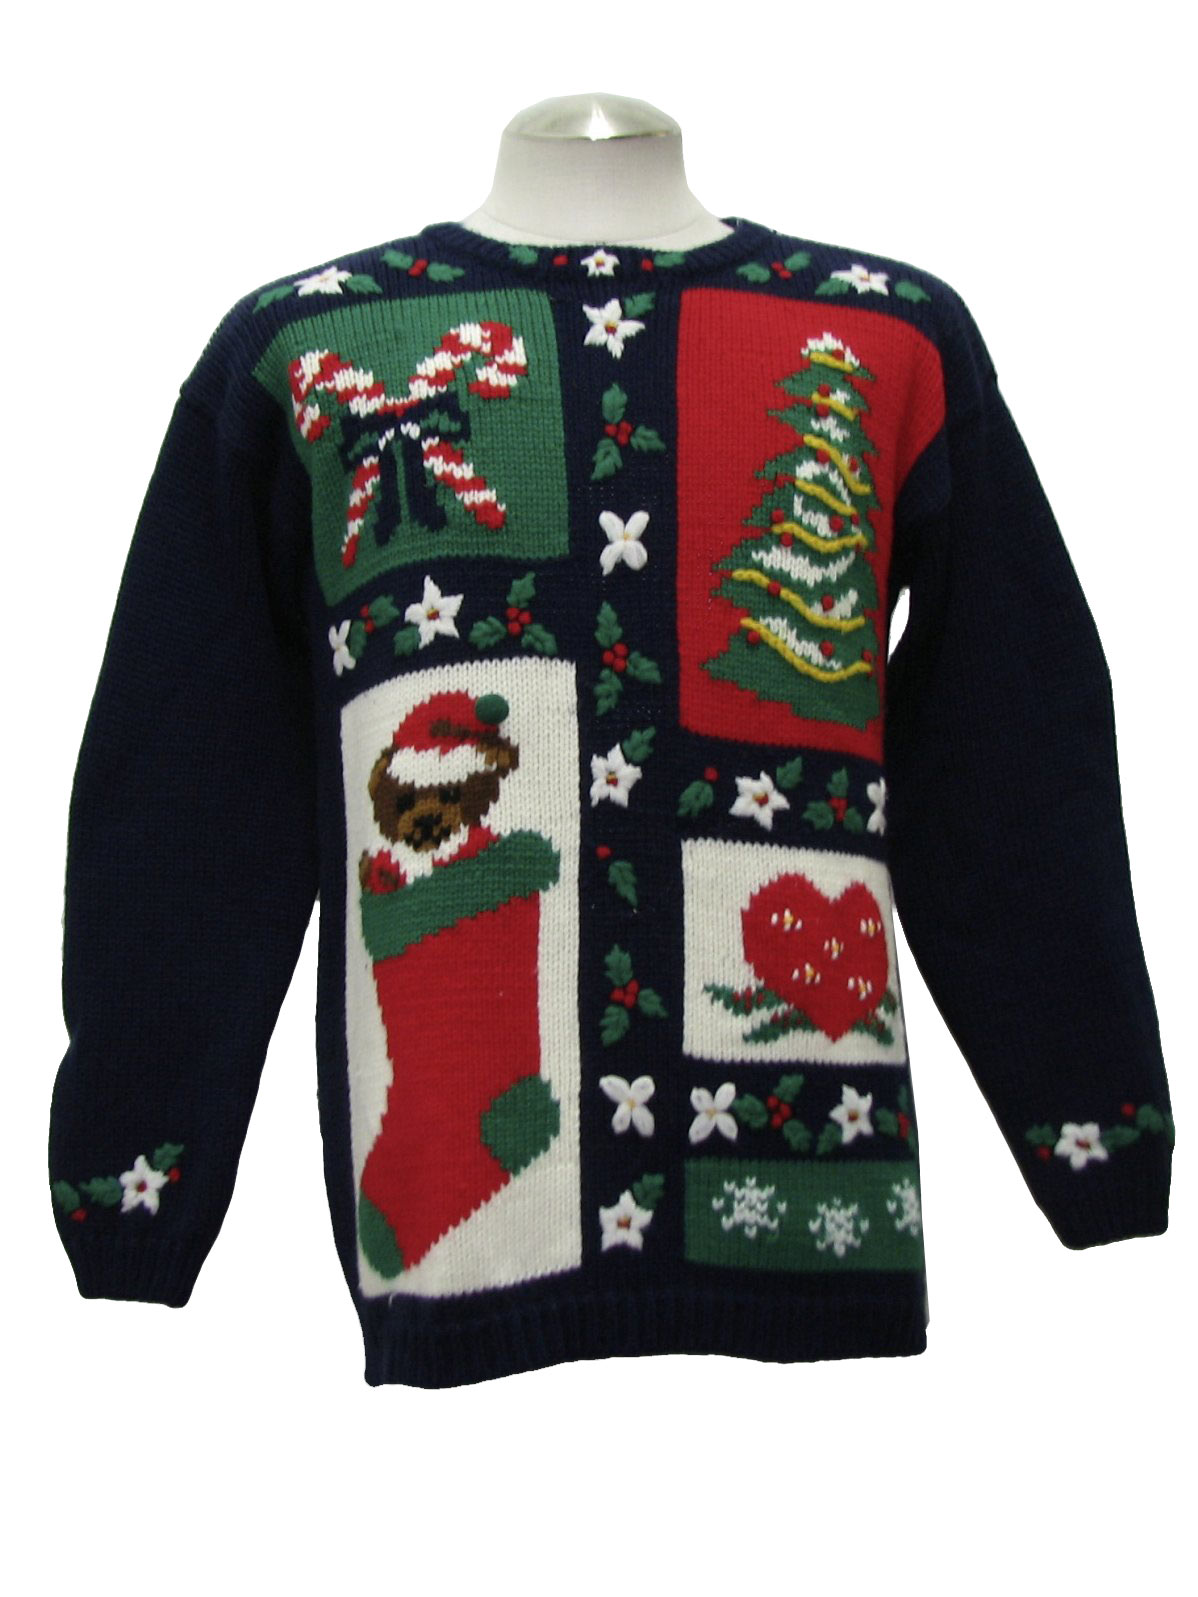 Christmas sweater round neckline with flowers holly boughs candy